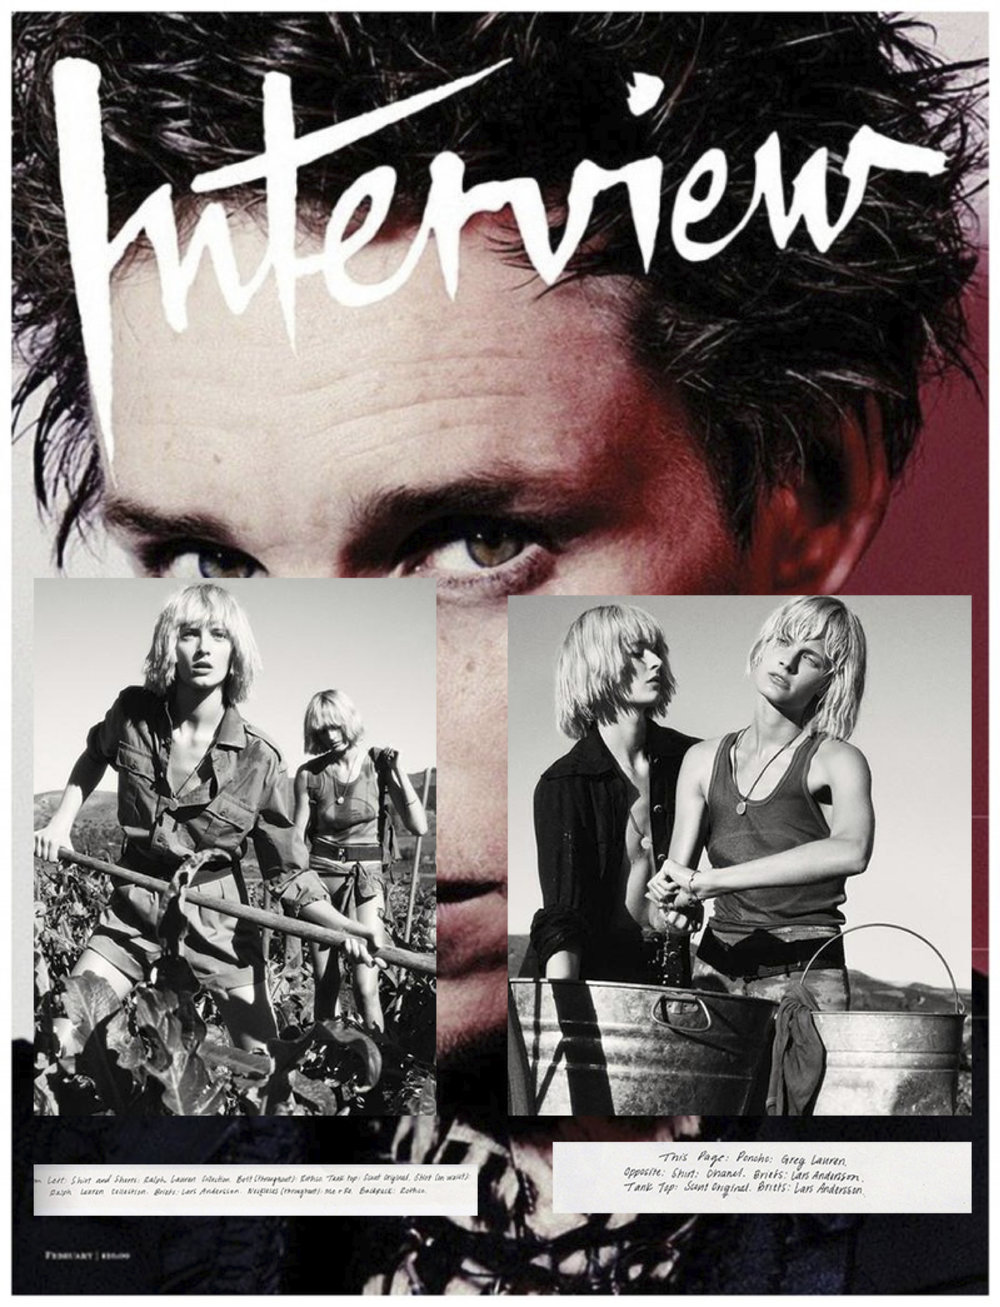 Interview X Lars Andersson 2  (1) copy 2.jpg